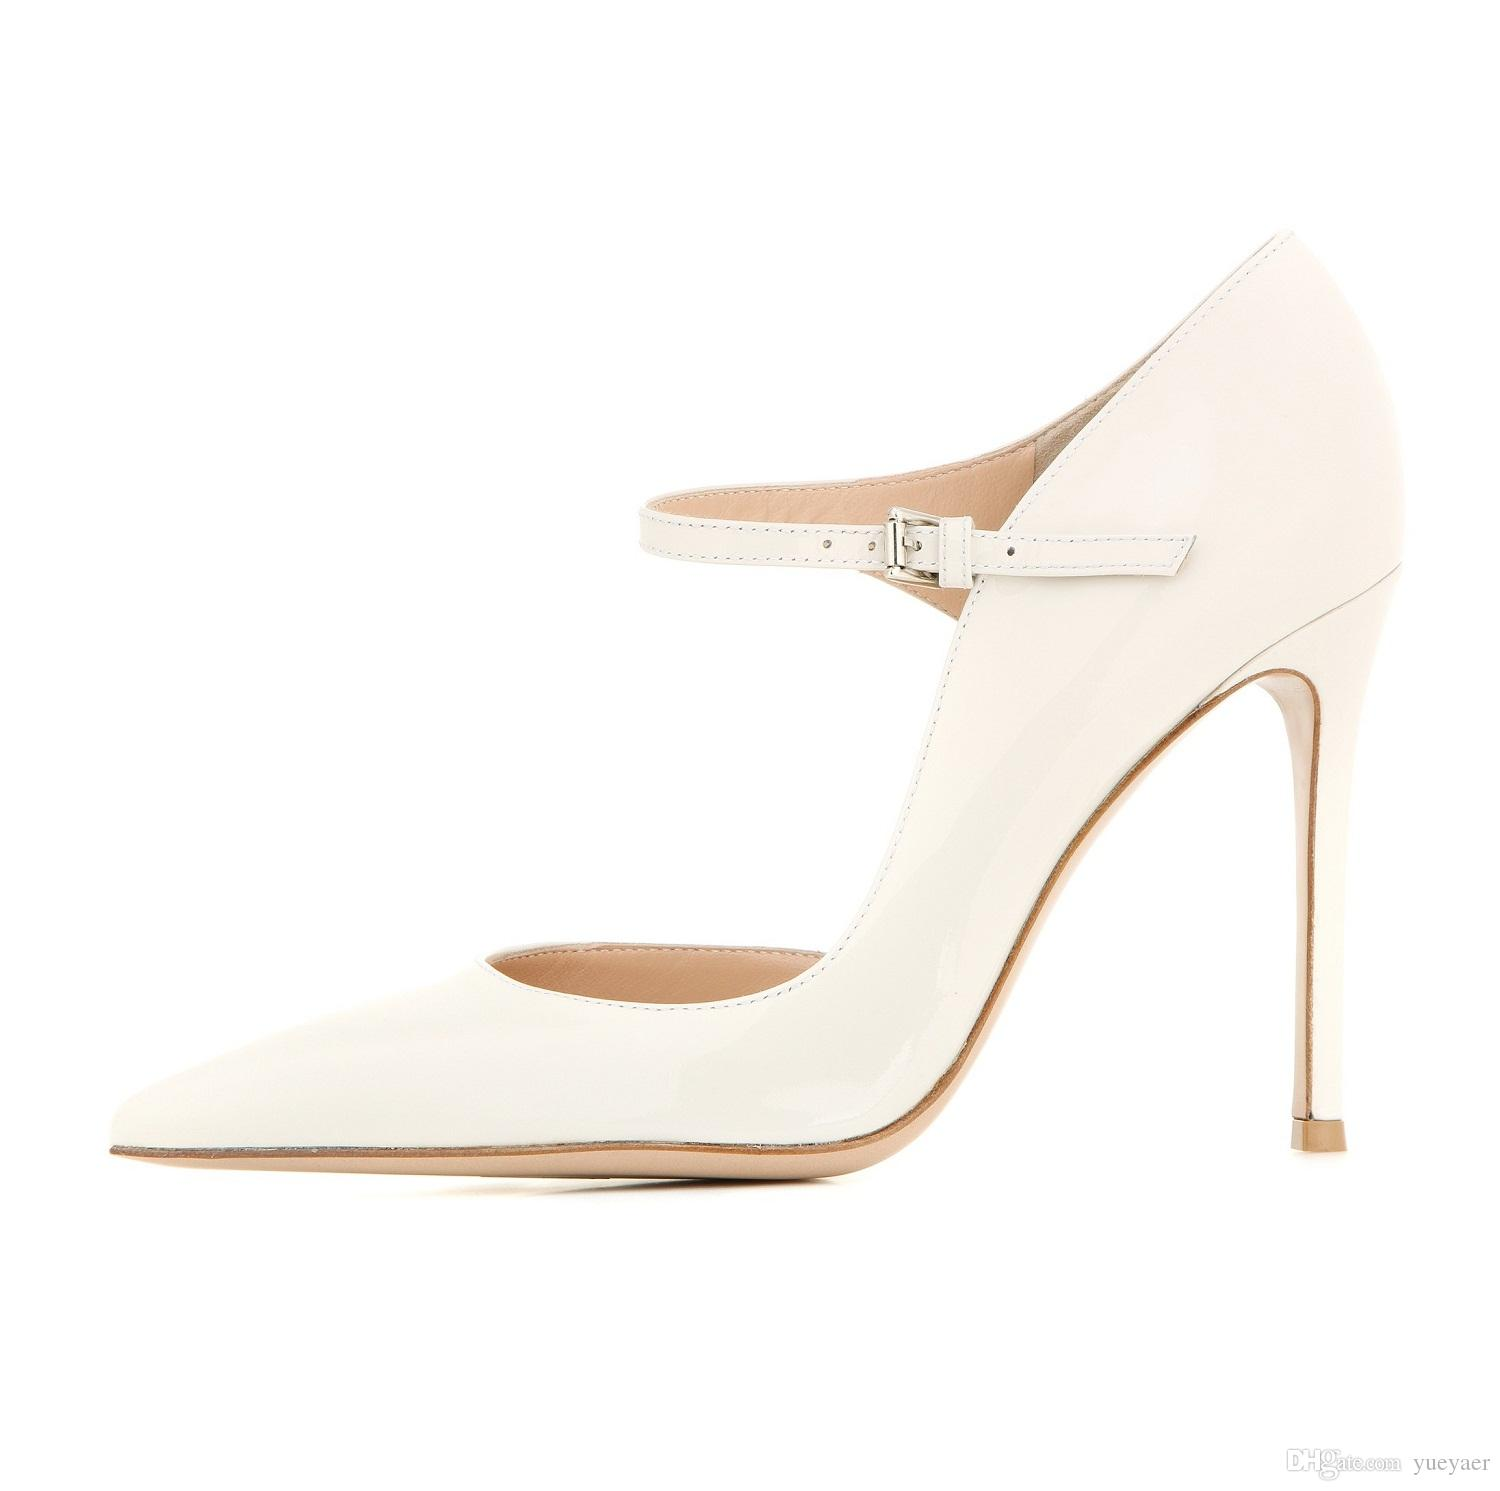 Zandina Womens Fashion Handmade Marry Janes Pointed Toe 100mm High Heel Party Prom Evening Pumps Stiletto Shoes White K328